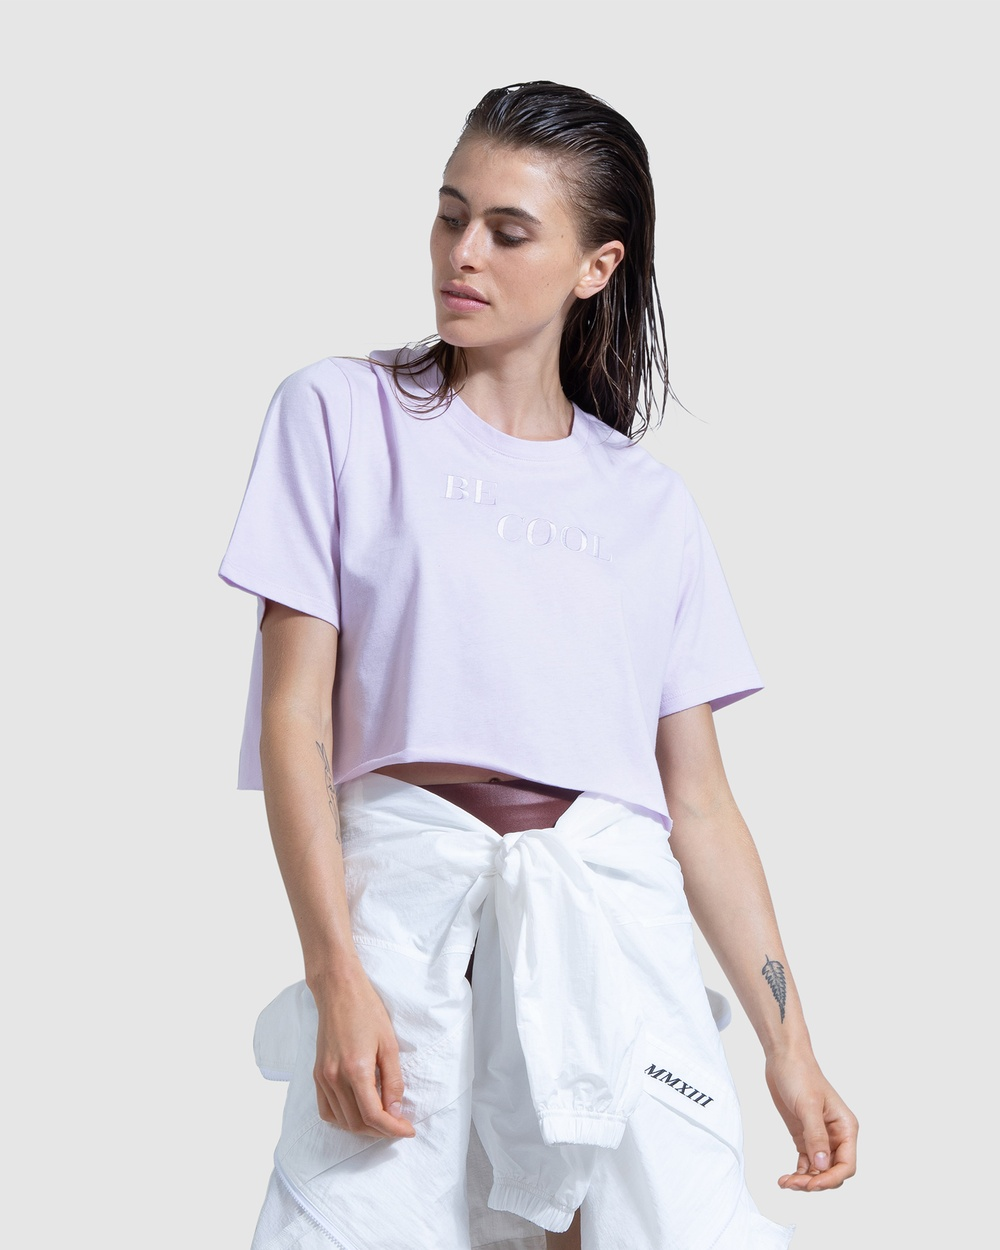 First Base - Be Cool Cropped Tee - Short Sleeve T-Shirts (Purple) Be Cool Cropped Tee